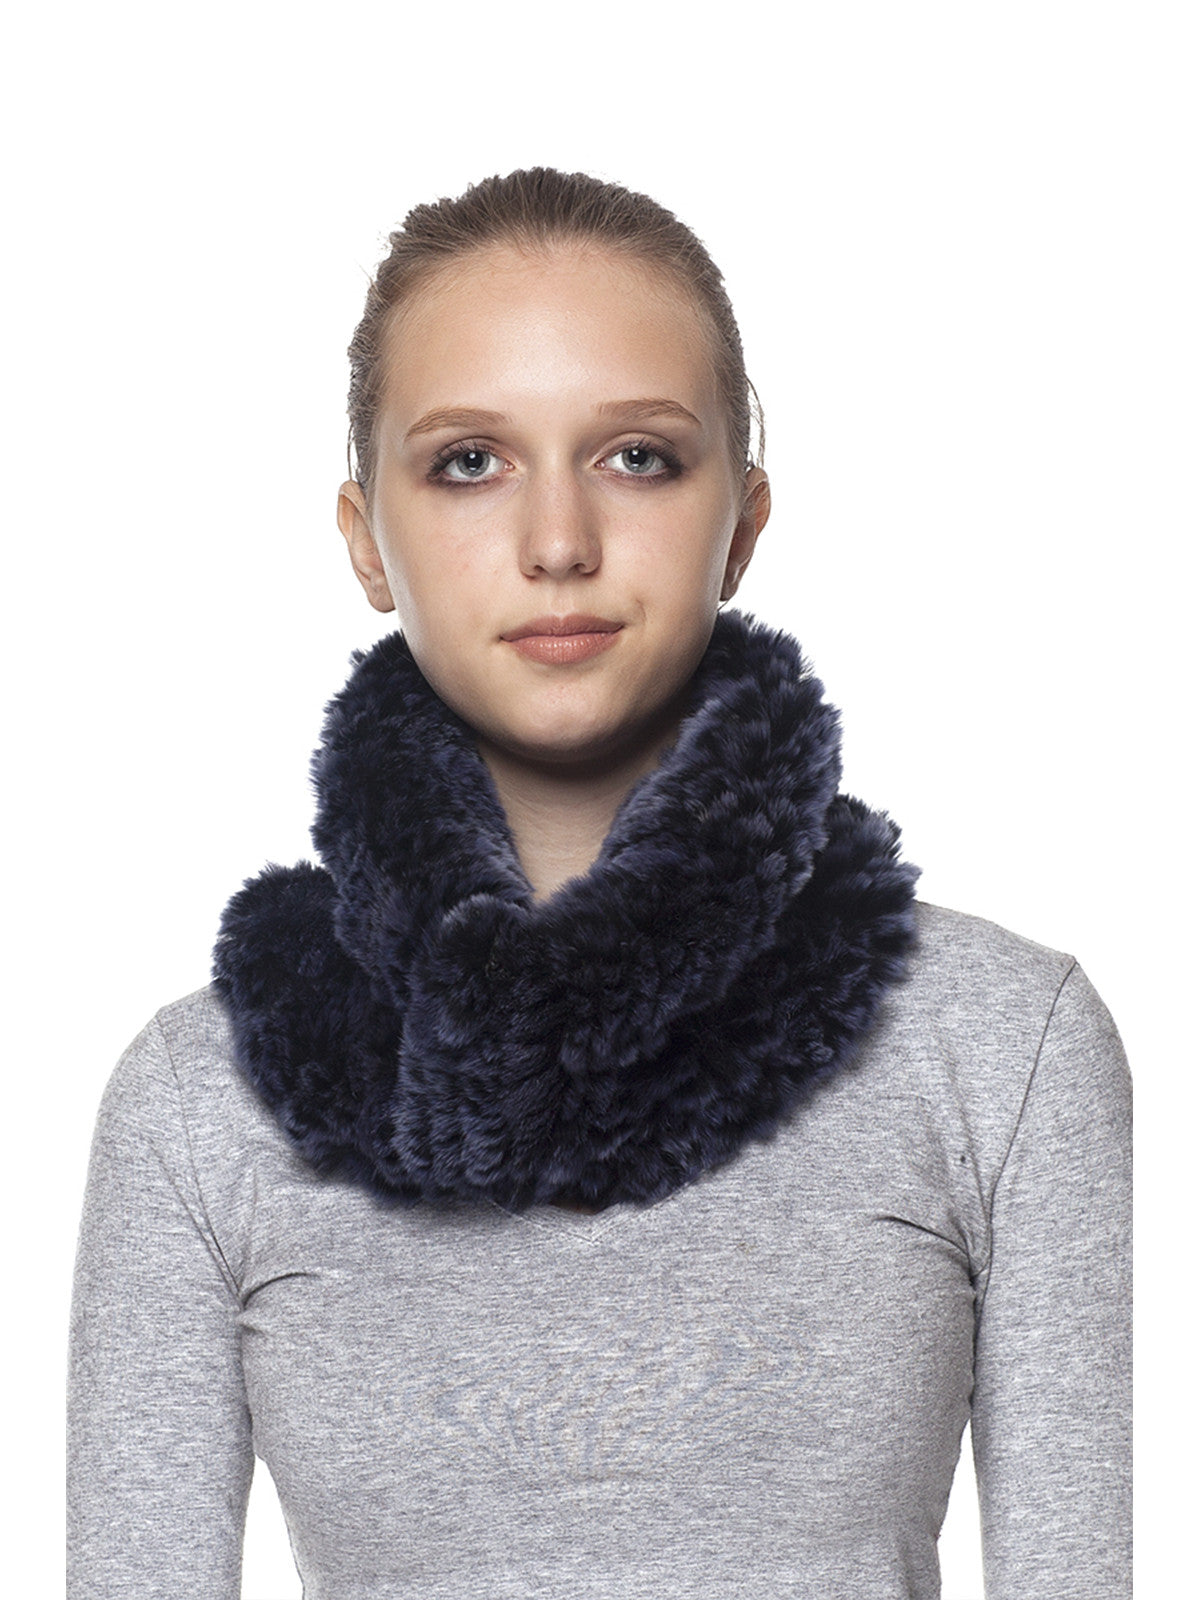 Blue Rex Rabbit Scarf